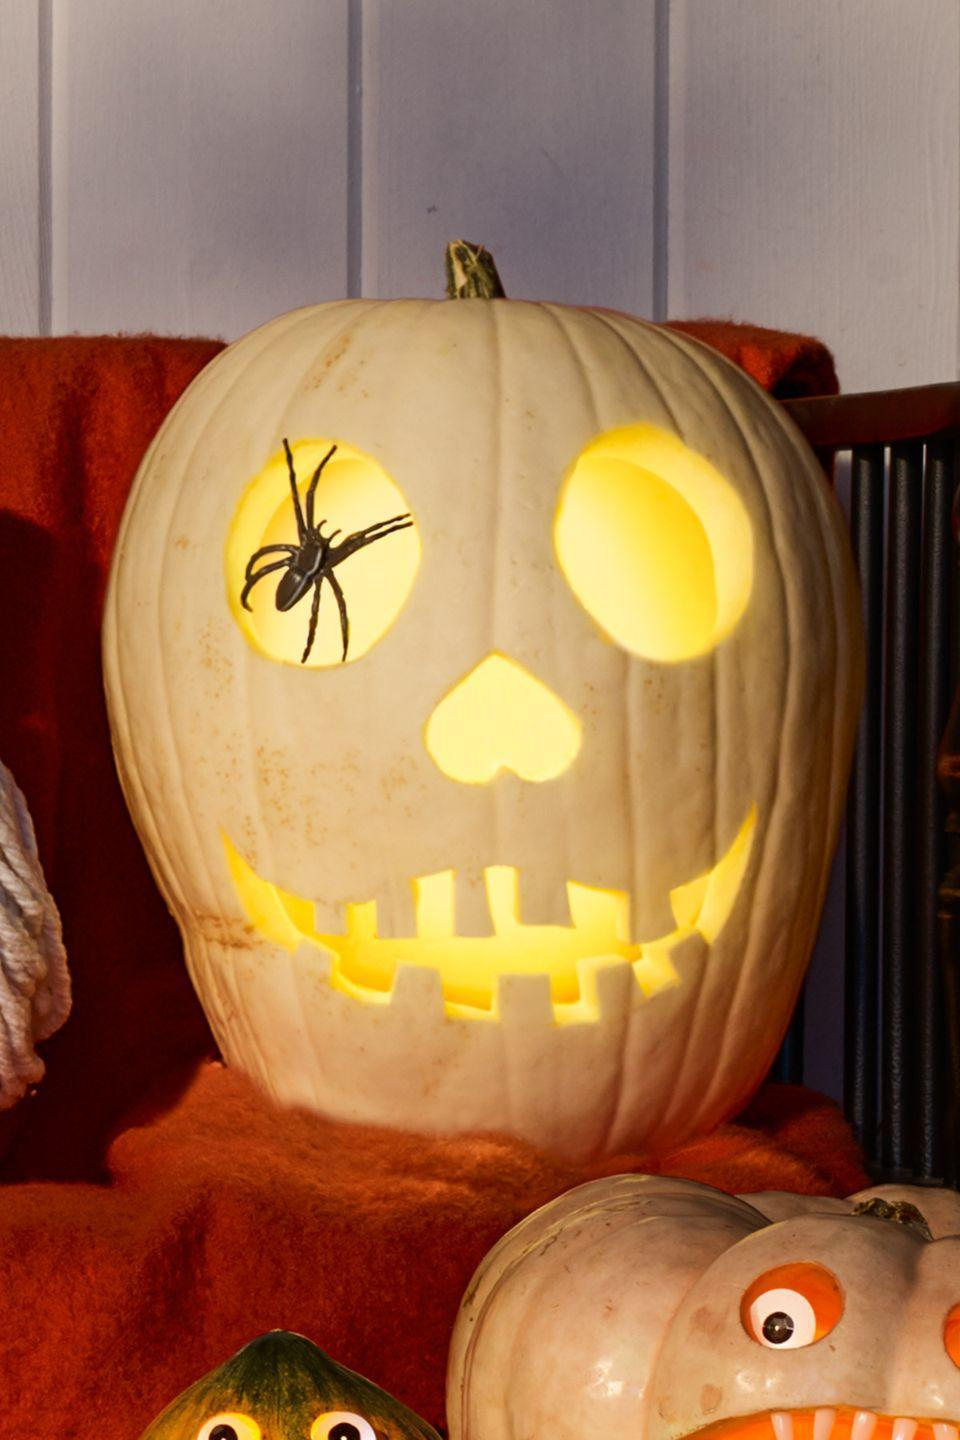 "<p>After you carve a bony facial expression, stick a plastic spider in one socket. On a tall white pumpkin, trace a circle around plastic spider and cut out. Carve a second circle eye, triangle nose, and jagged teeth. Push spider into 1 eyehole.<br></p><p><strong>What You'll Need: </strong><a href=""https://www.amazon.com/dp/B07CVJ3LBN/?tag=syn-yahoo-20&ascsubtag=%5Bartid%7C10070.g.950%5Bsrc%7Cyahoo-us"" rel=""nofollow noopener"" target=""_blank"" data-ylk=""slk:Plastic spider"" class=""link rapid-noclick-resp"">Plastic spider</a> ($9 for 30, Amazon)</p>"